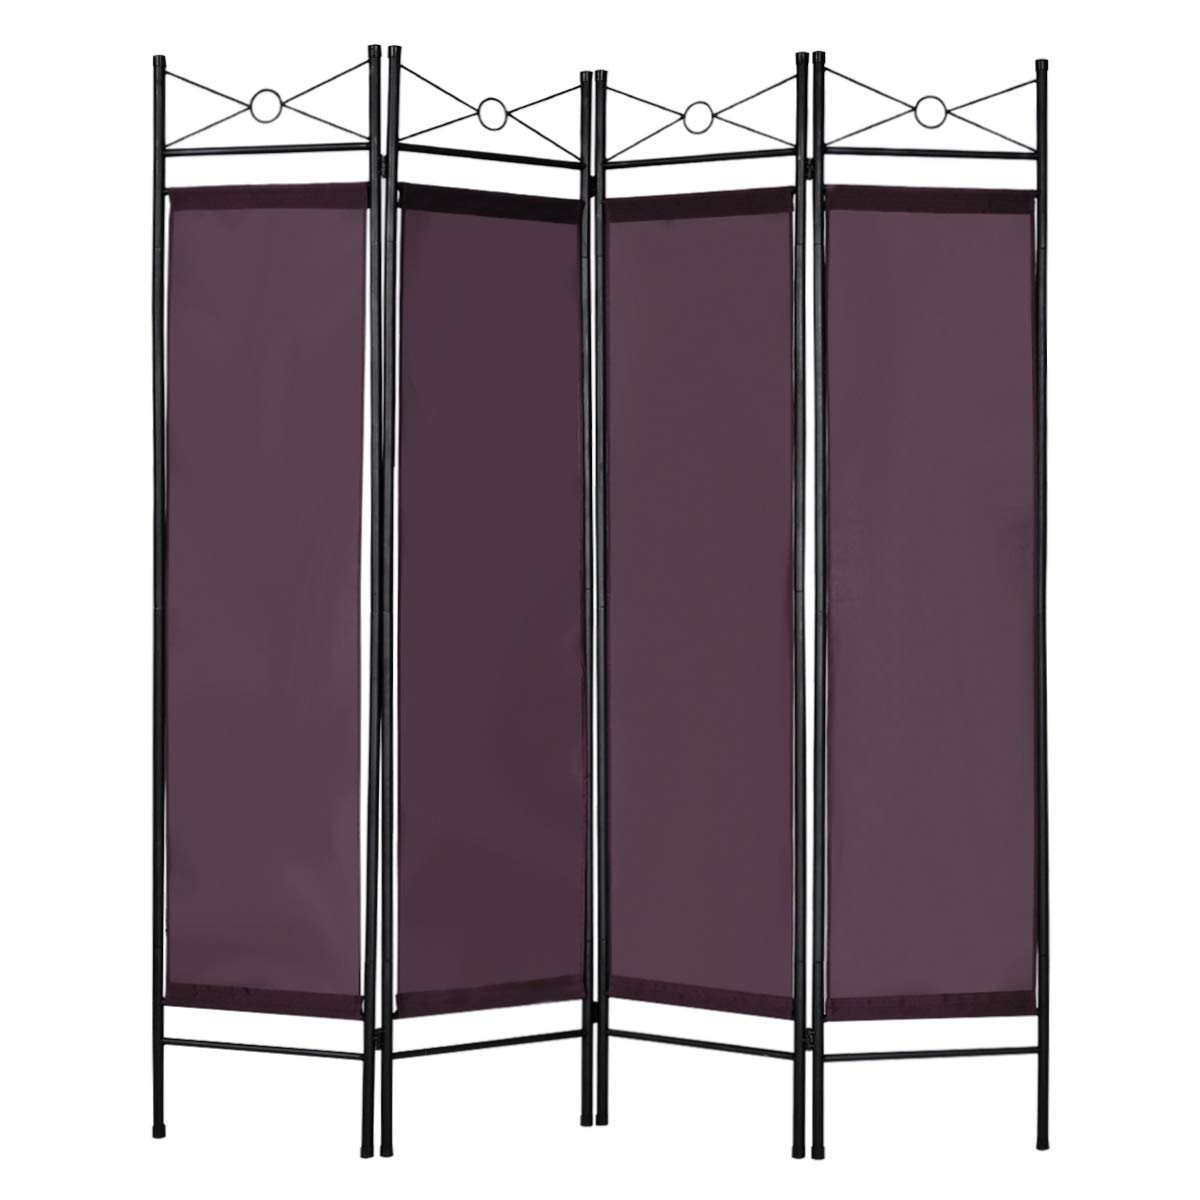 Giantex 4 Panel Room Divider Screens Steel Frame & Fabric Surface ...